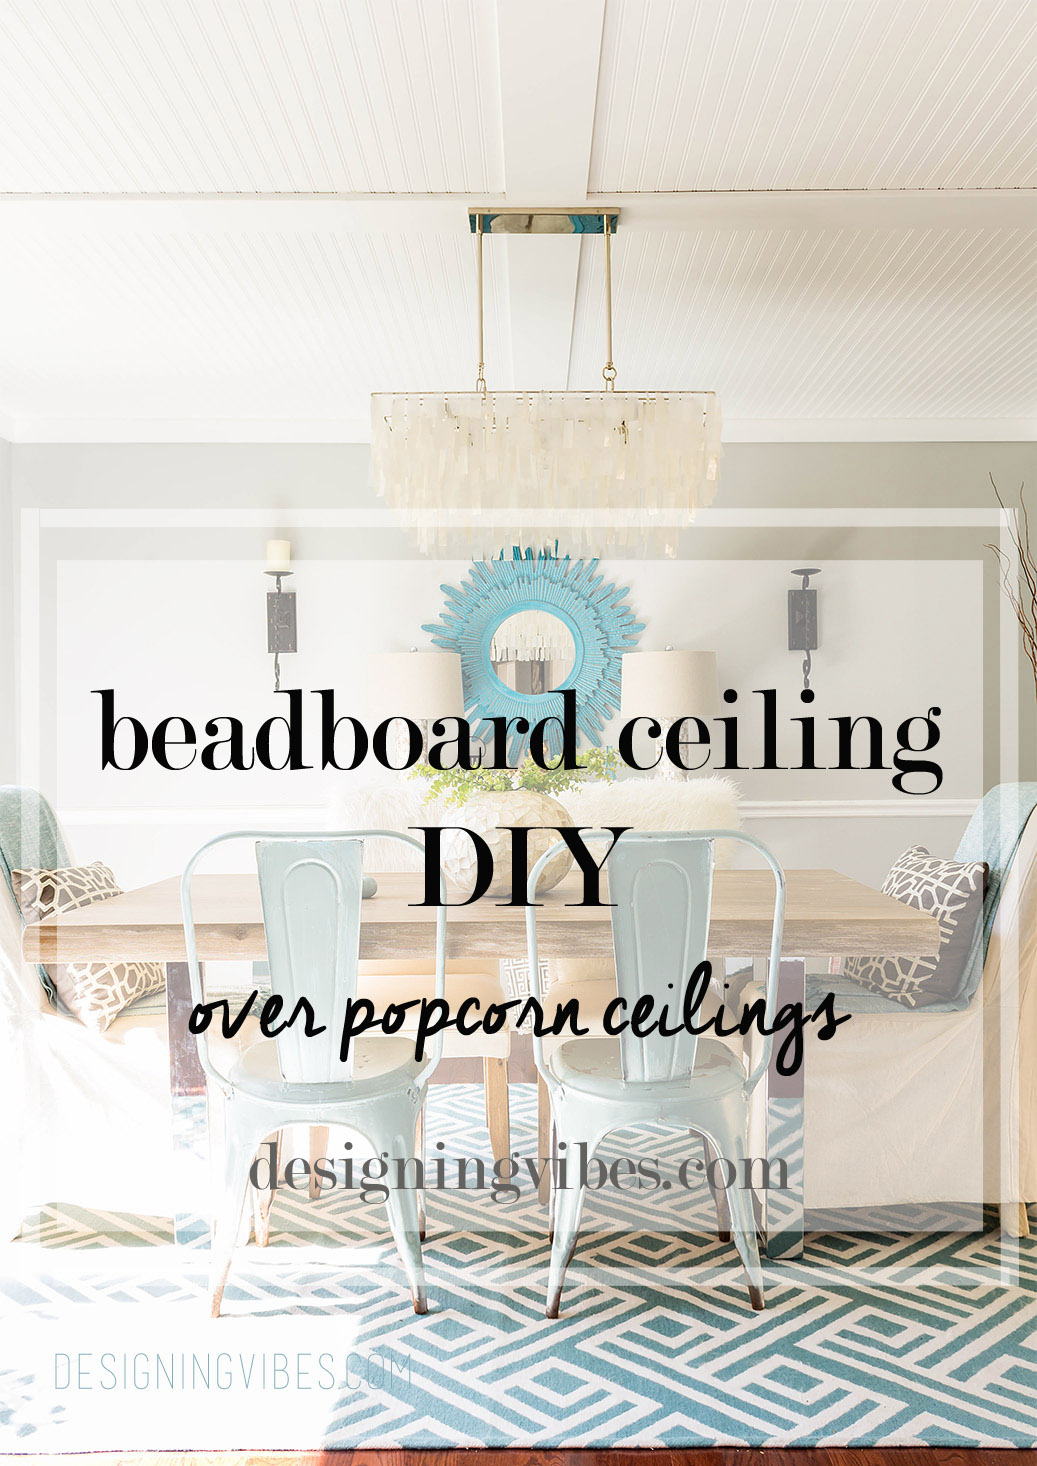 How to Cover Popcorn Ceiling with Beadboard Planks - DIY Tutorial